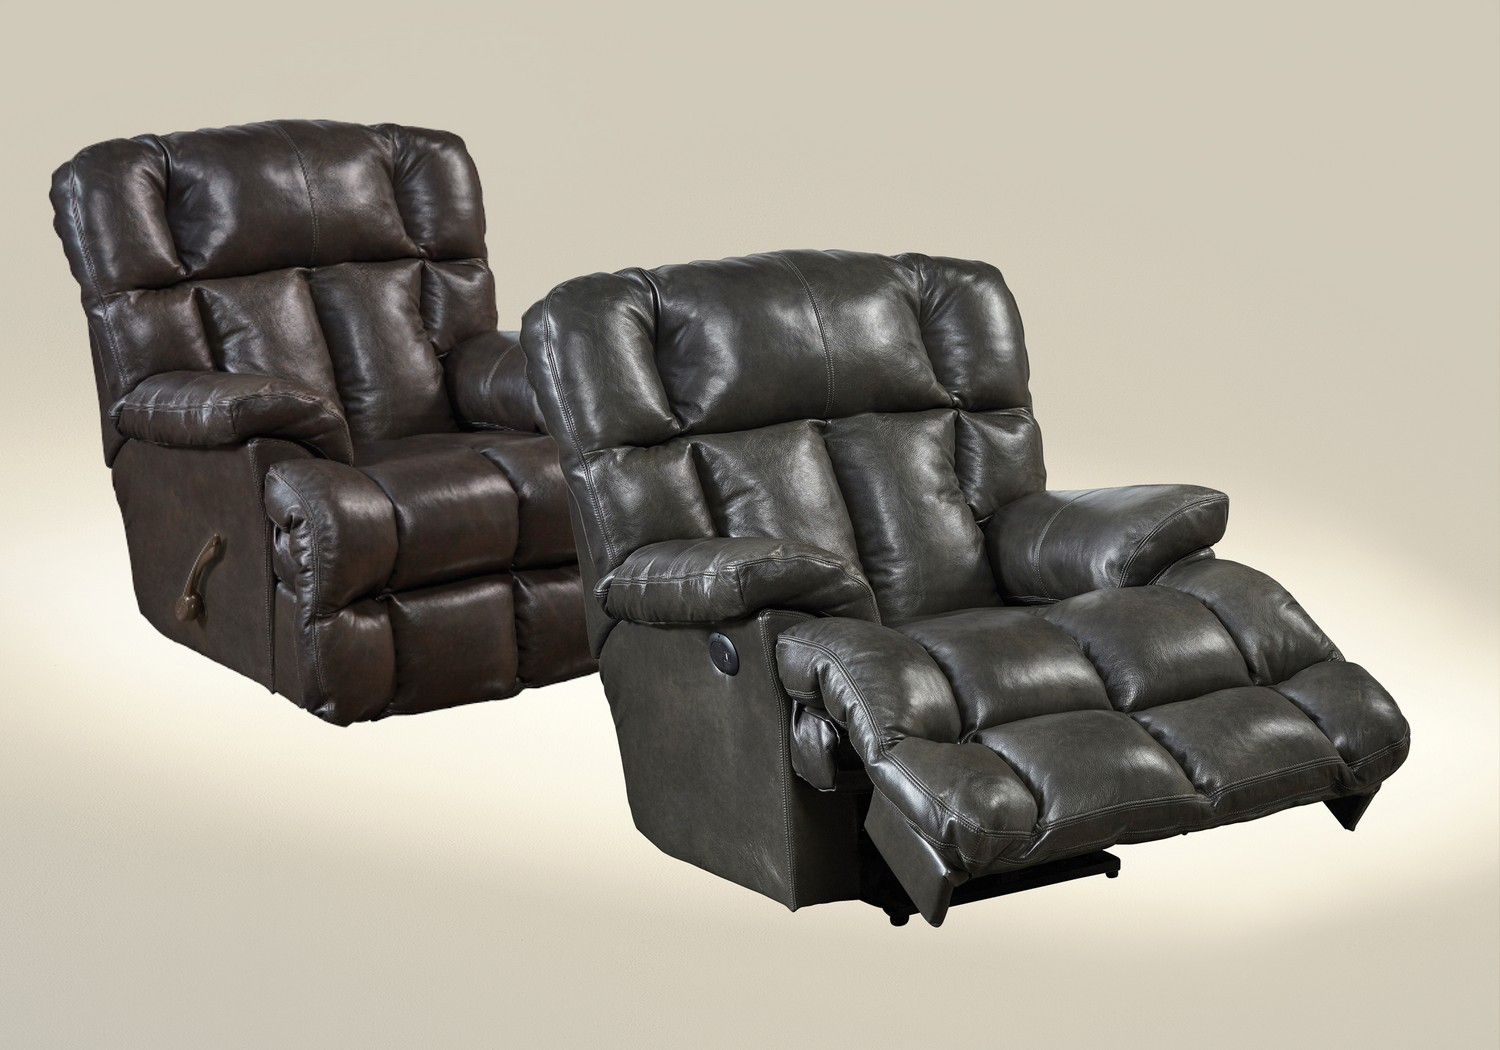 CatNapper Victor Top Grain Leather Chaise Rocker Recliner - Steel : chaise rocker recliner - Sectionals, Sofas & Couches